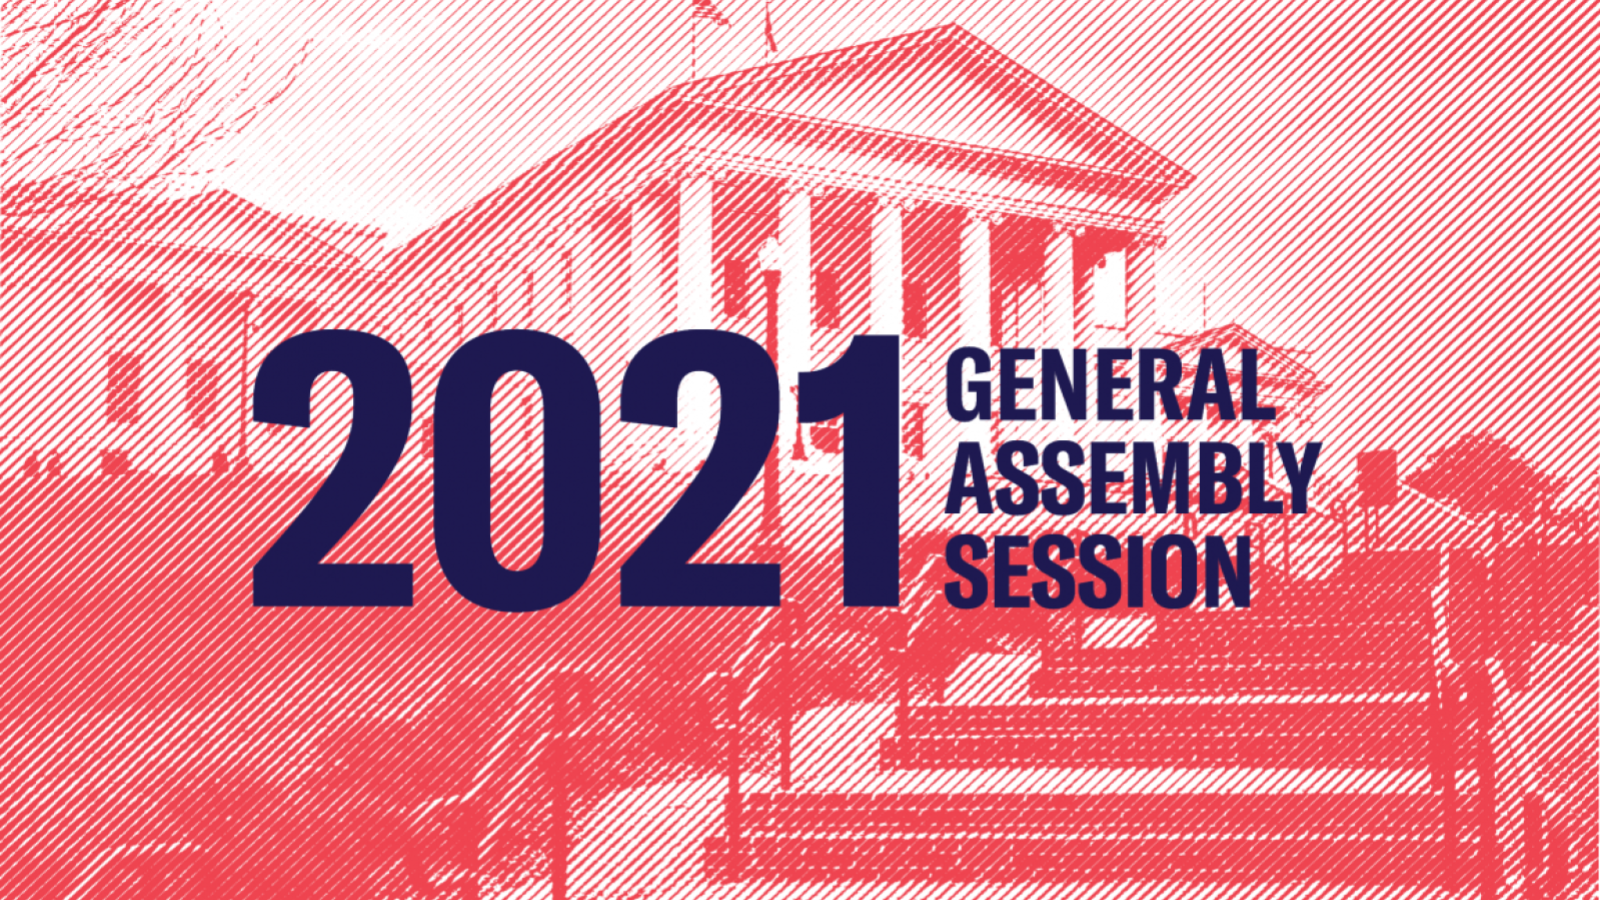 2021 General Assembly Session